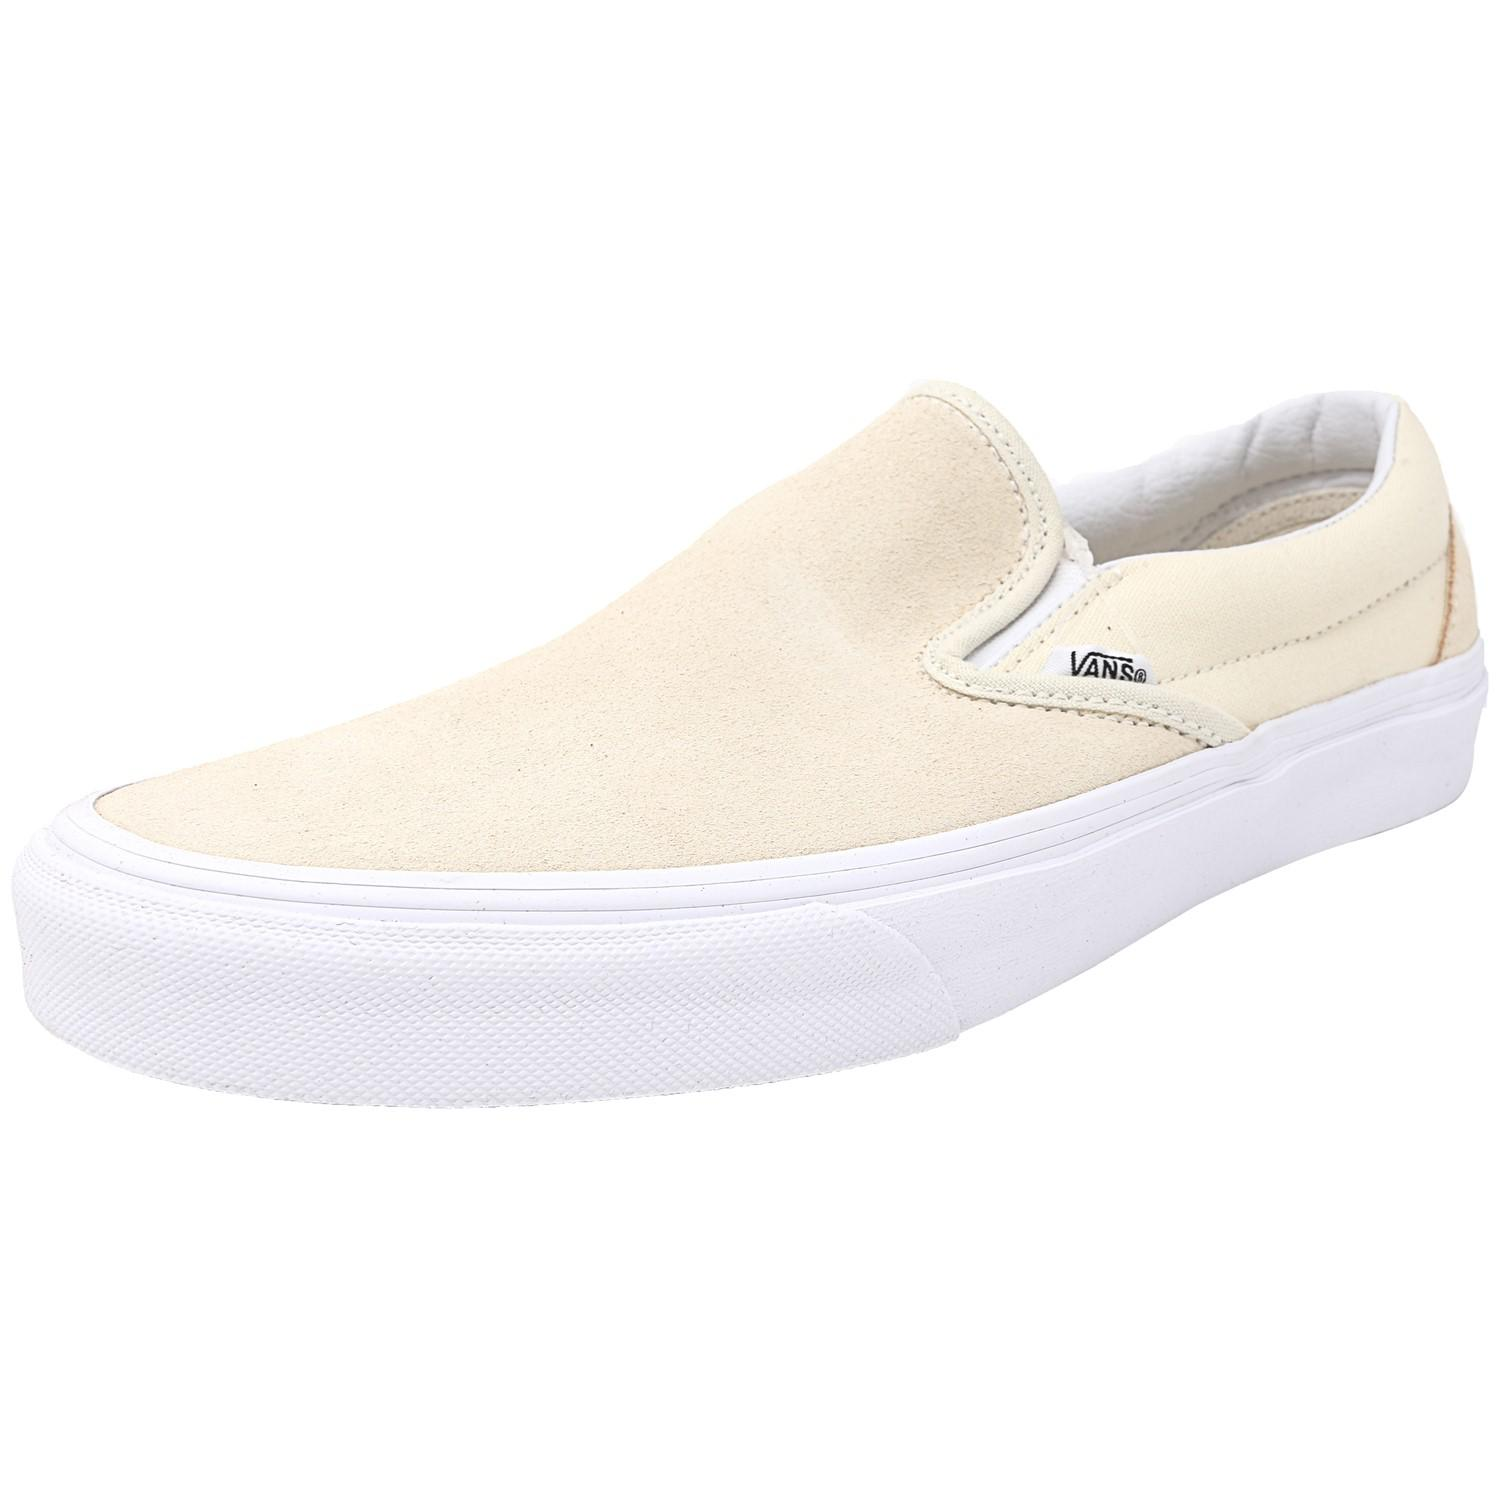 c5e2e3fc832 Lyst - Vans Classic Slip-on Suede And Canvas Afterglow   True White ...